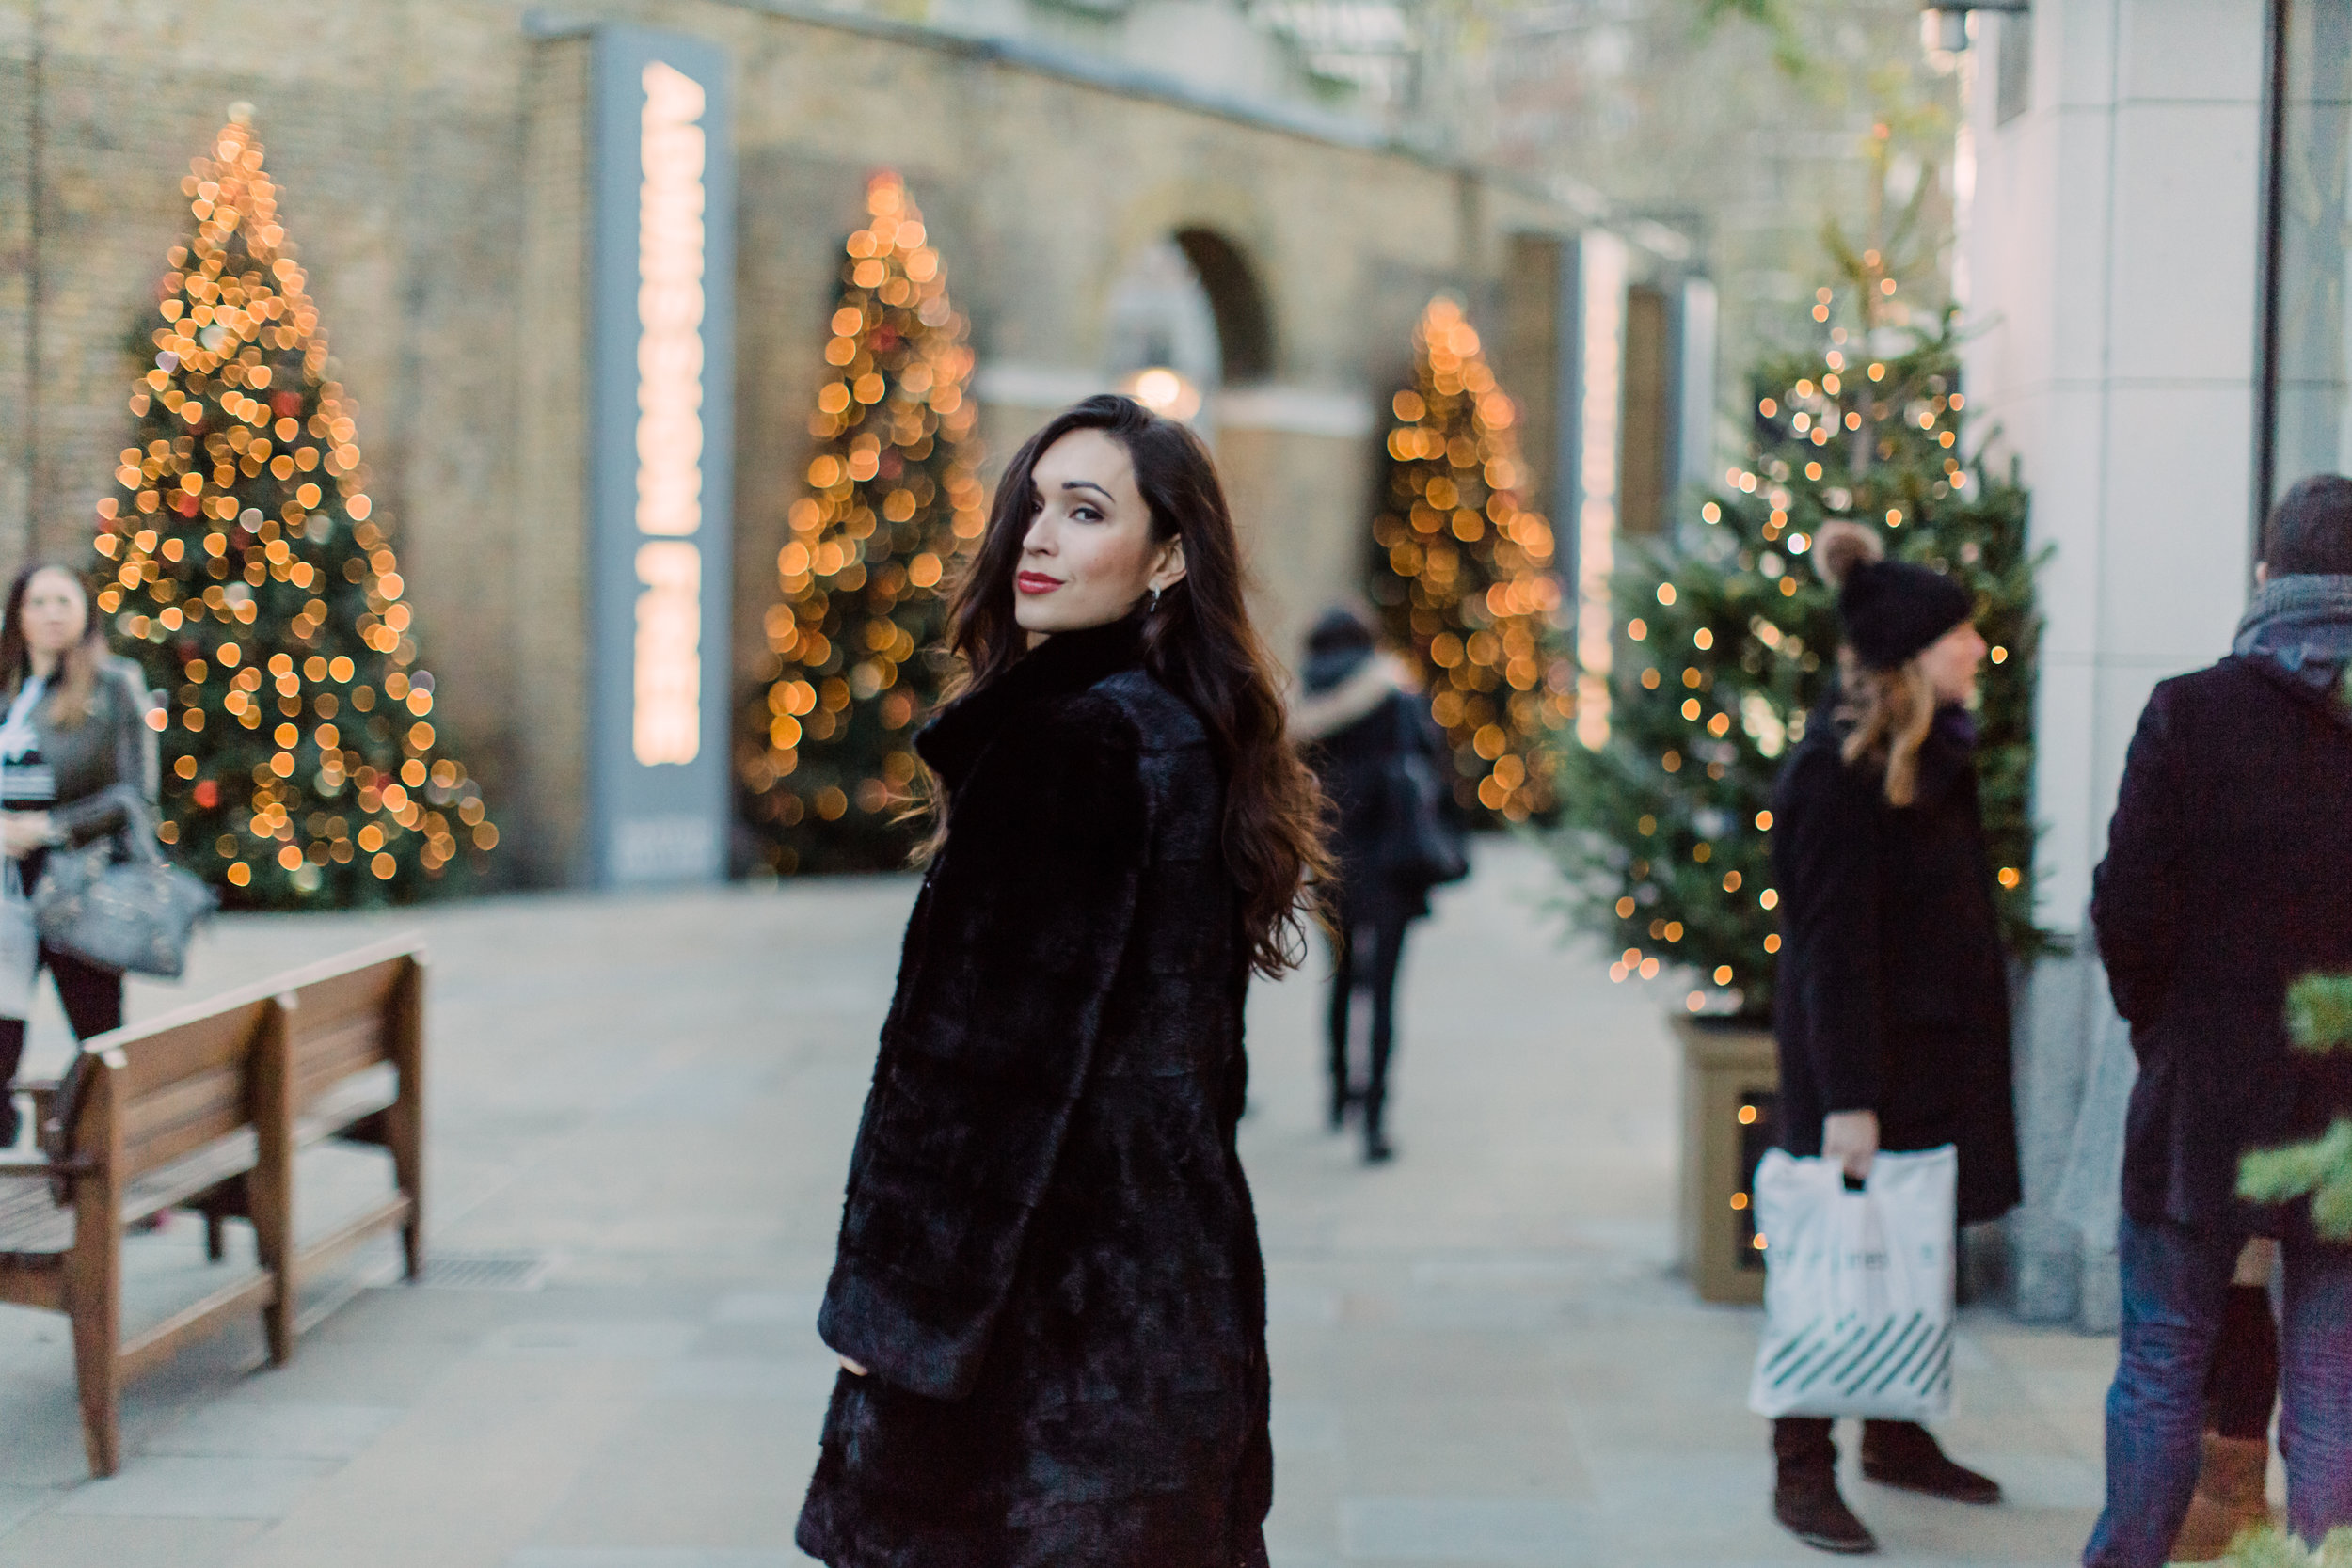 Christmas Photo Session about Kristina Rapp- Sloane Square, London UK - Joana Senkute Photography